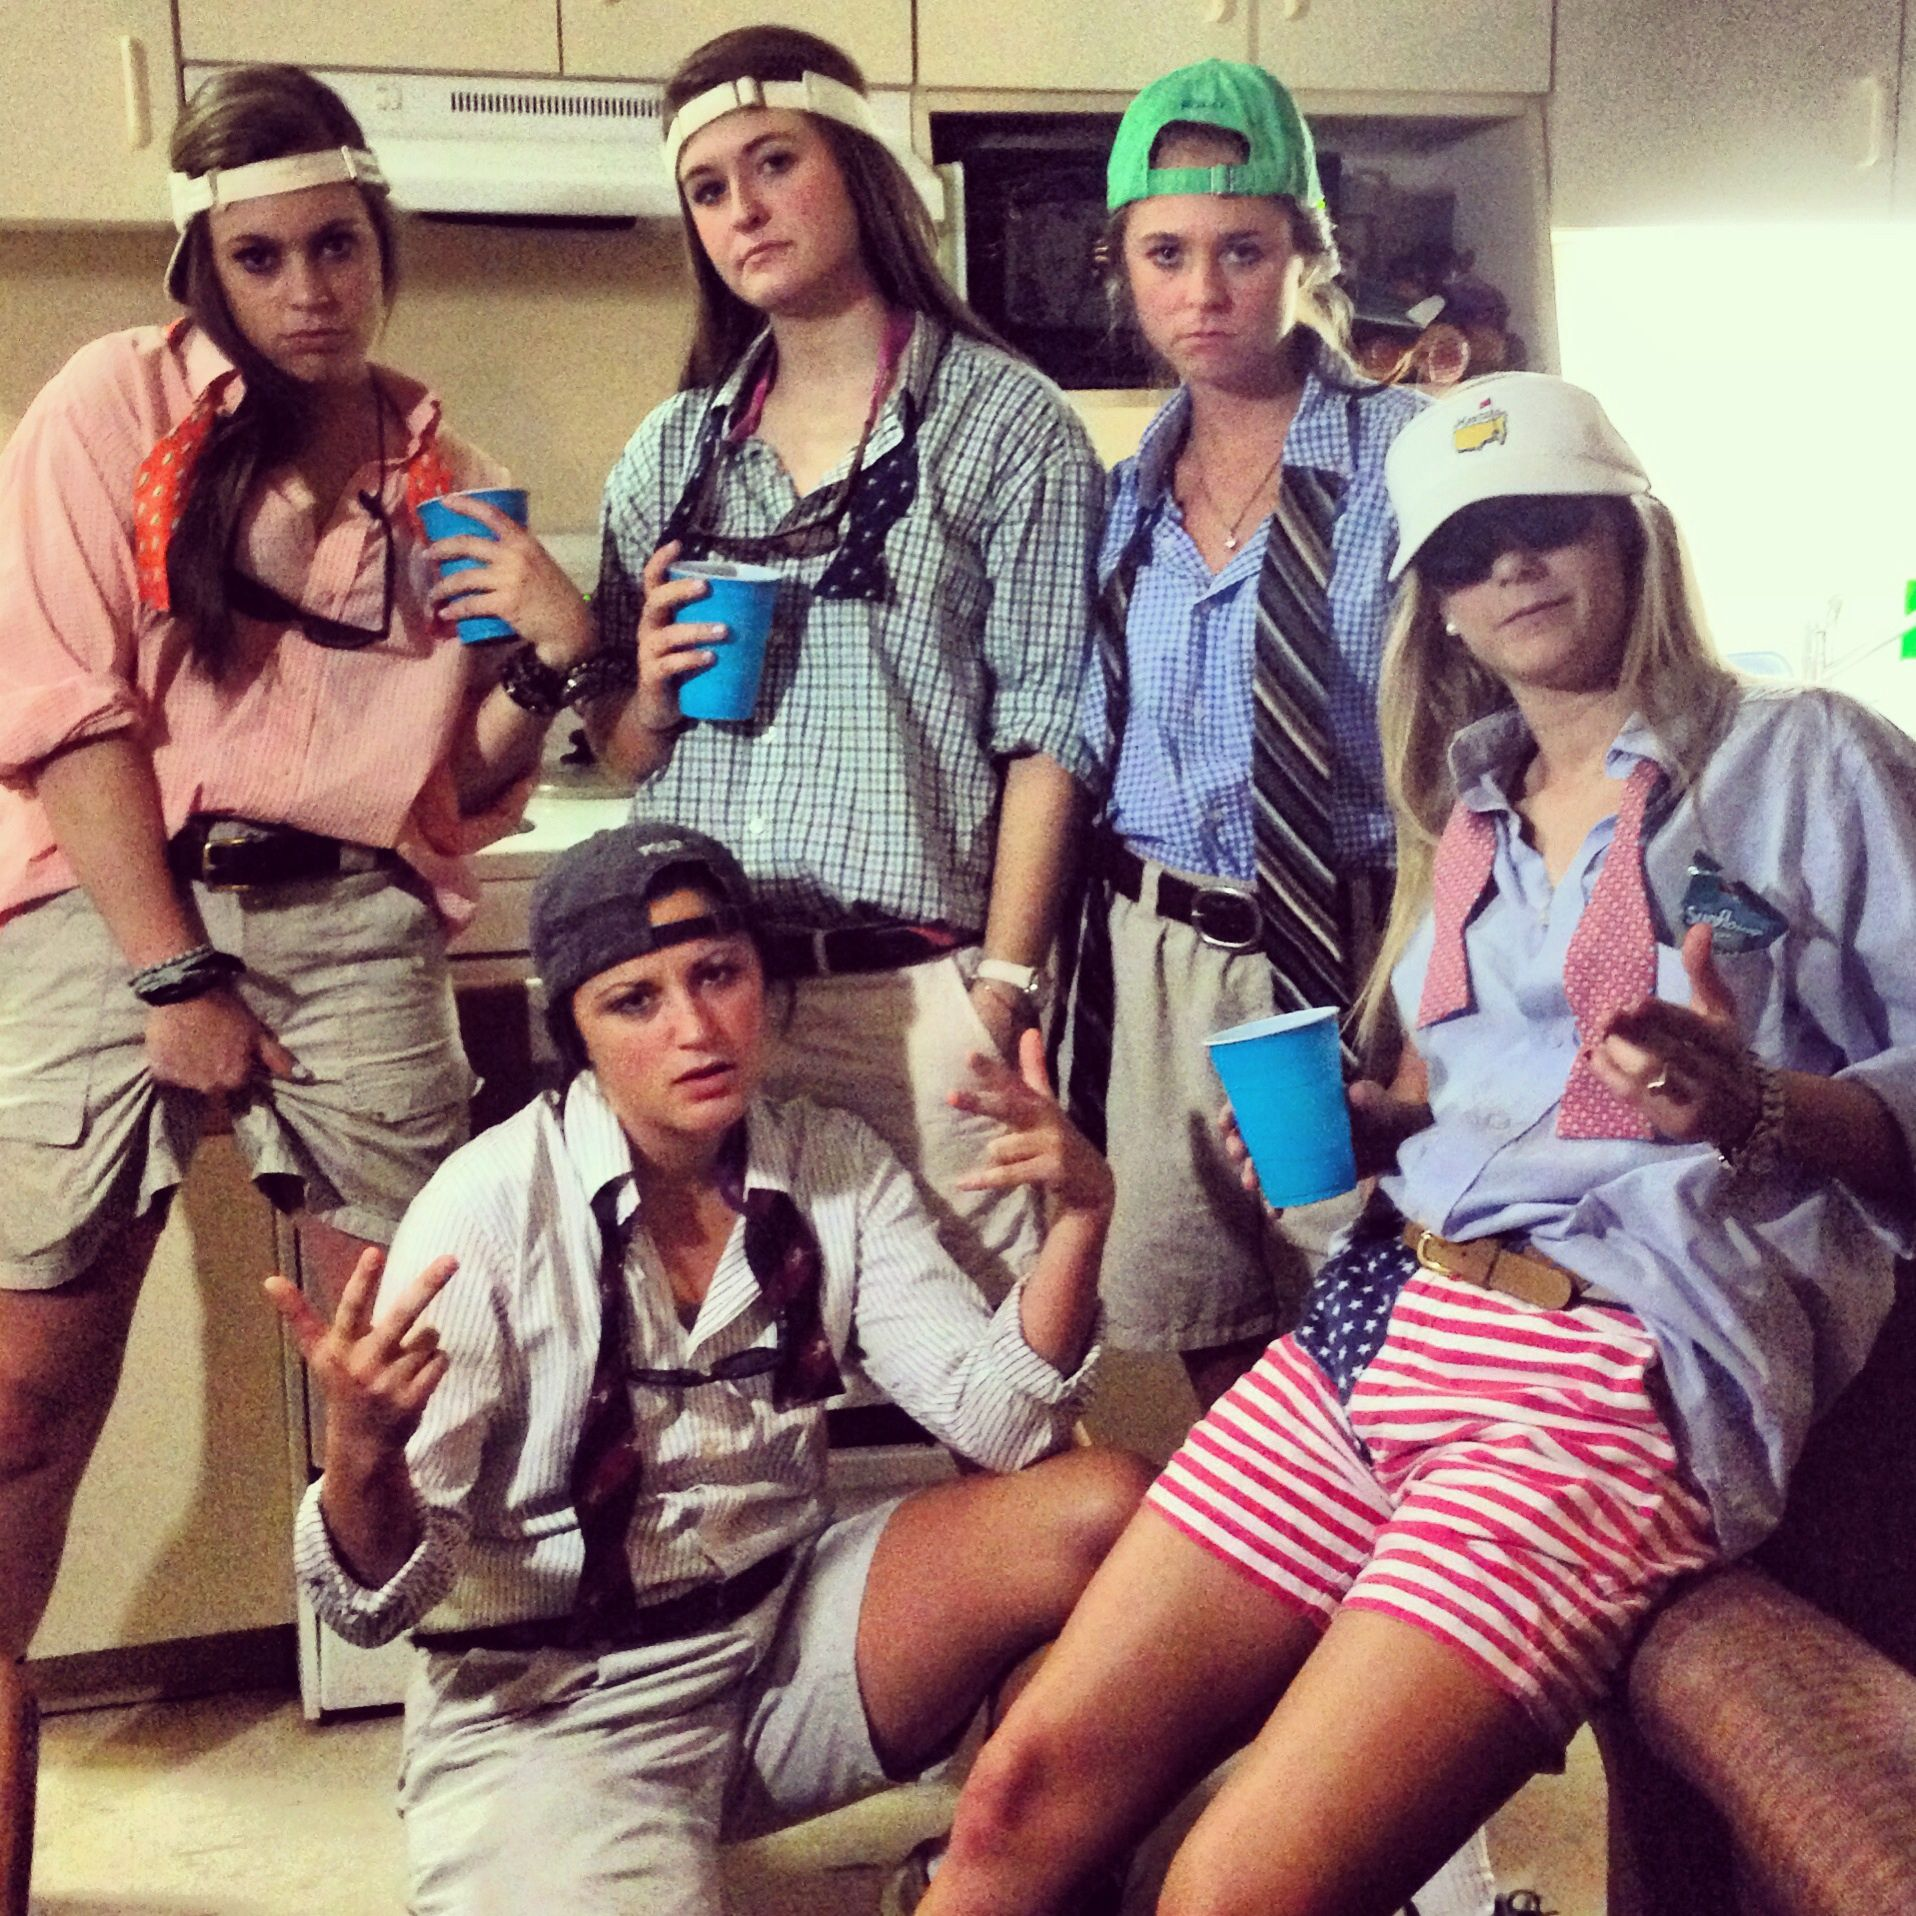 holla atcha new frat daddyz. we are the brothers of sdn fraternity